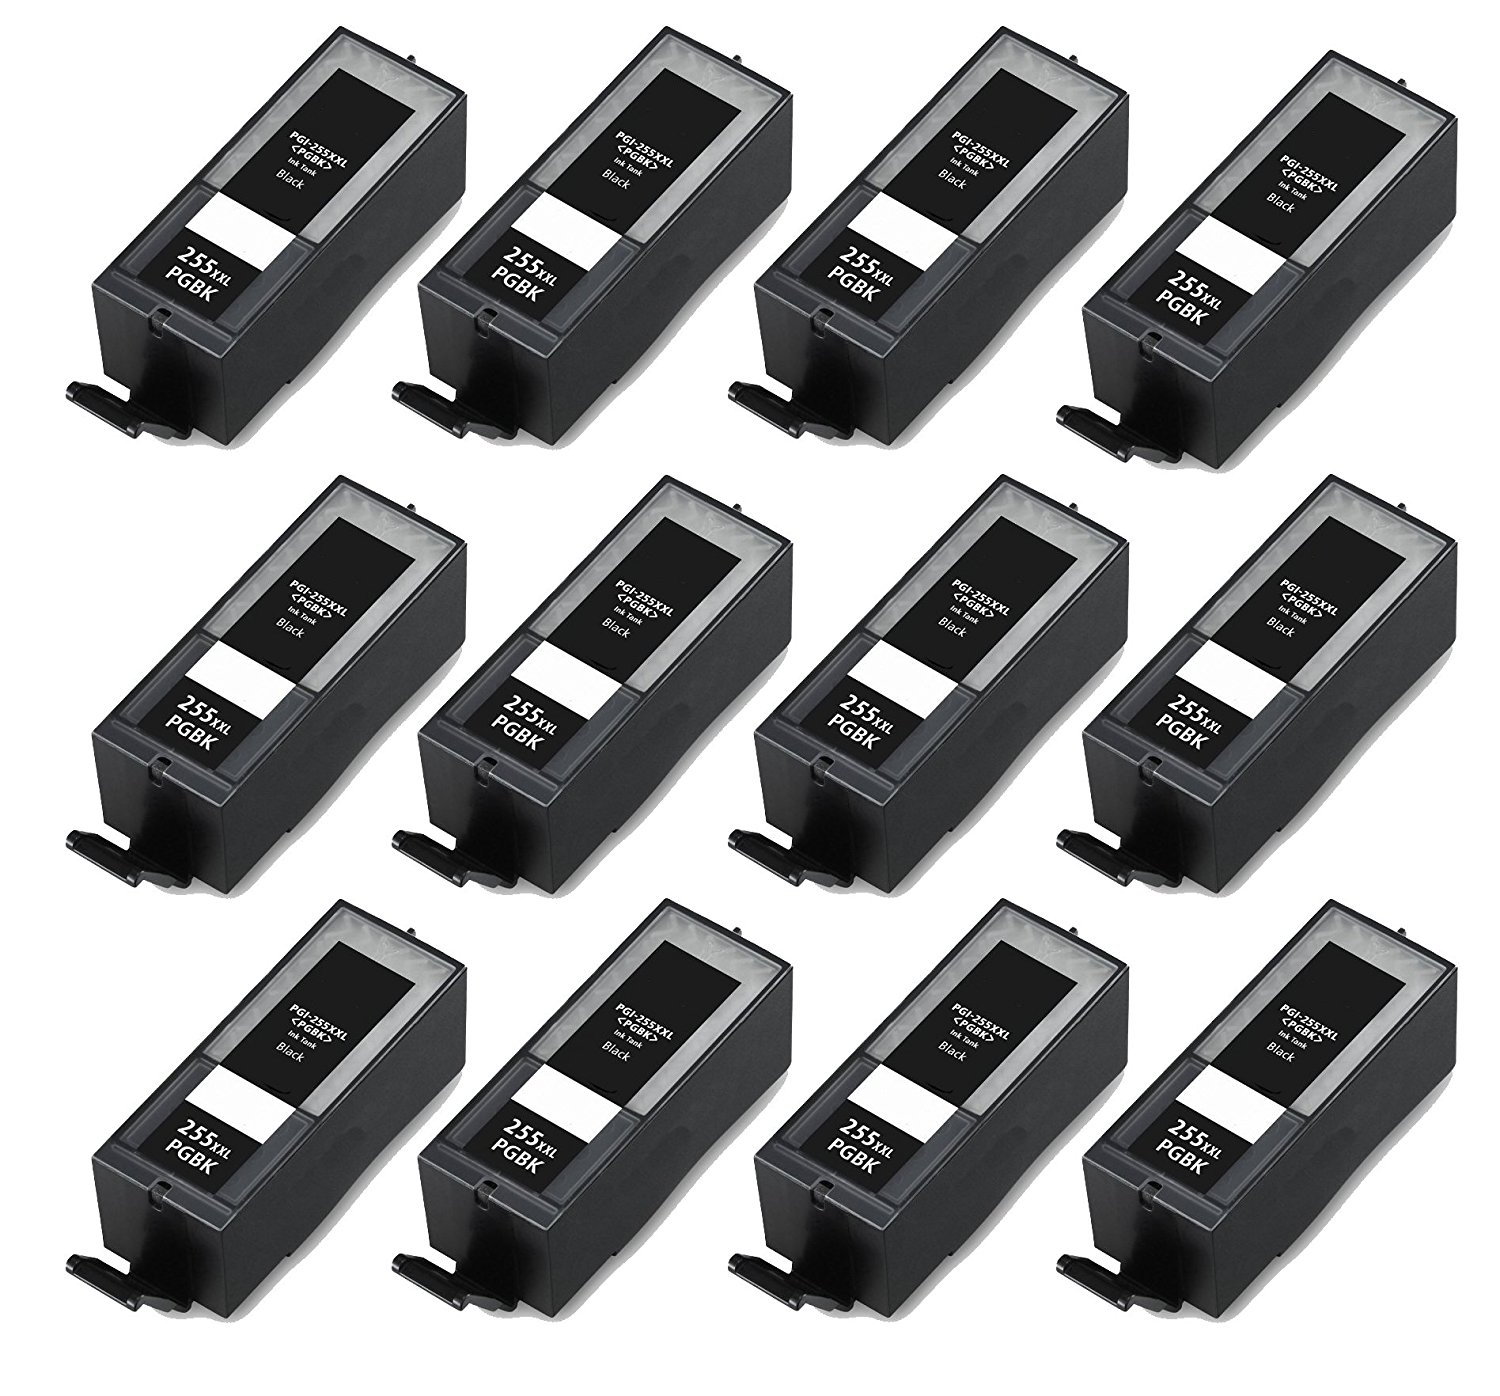 HI-VISION® 12 PK Compatible Canon PGI-255XXL 8050B001 Extra High Yield Black Ink Cartridges Replacement for PIXMA iX6820, MX722, MX922 Inkjet Office All-In-One printers